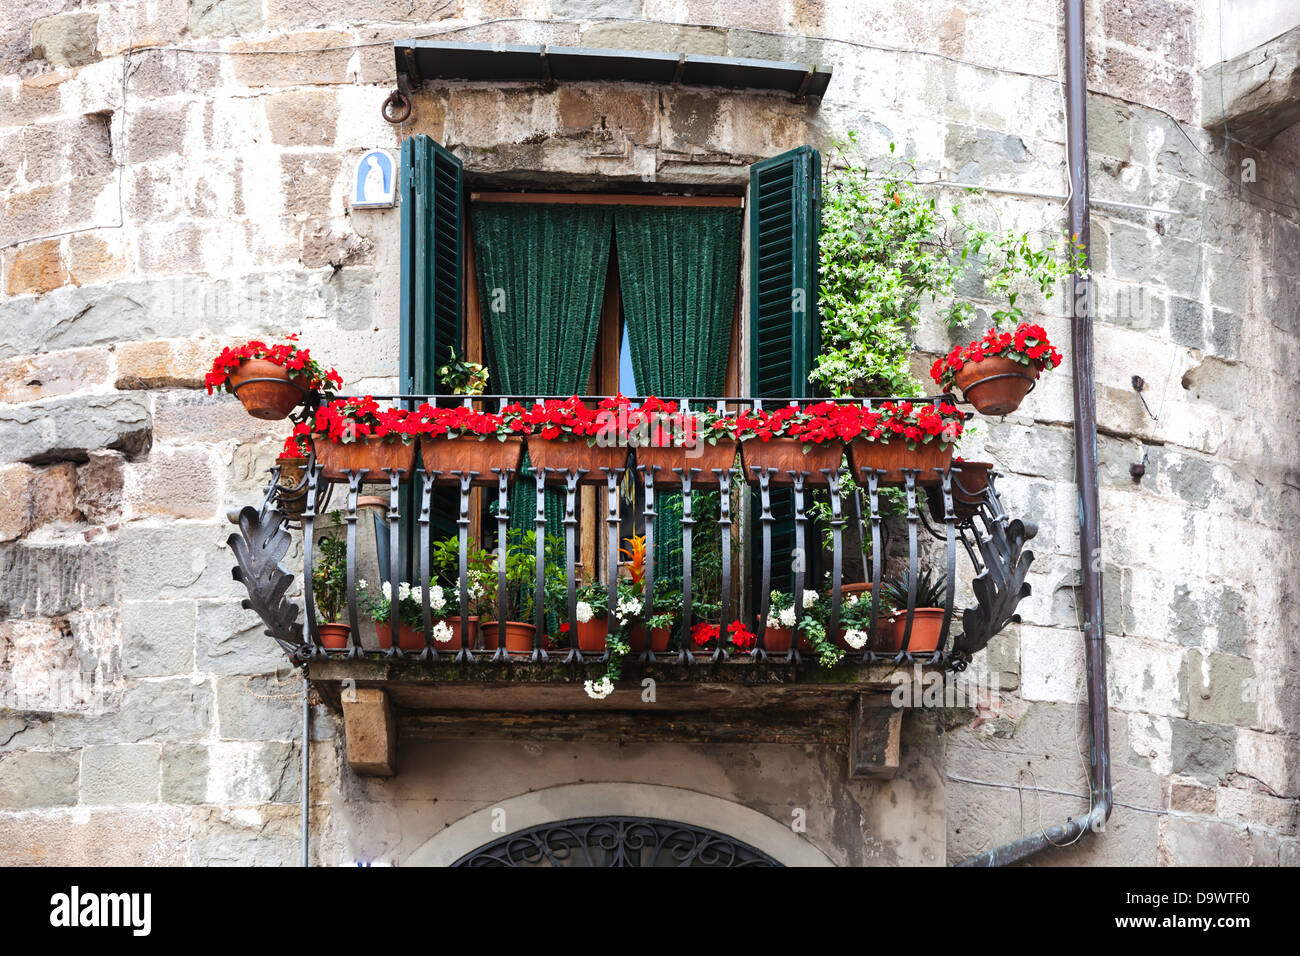 Balcony in medieval lucca tuscany italy stock photo for Balcony in italian